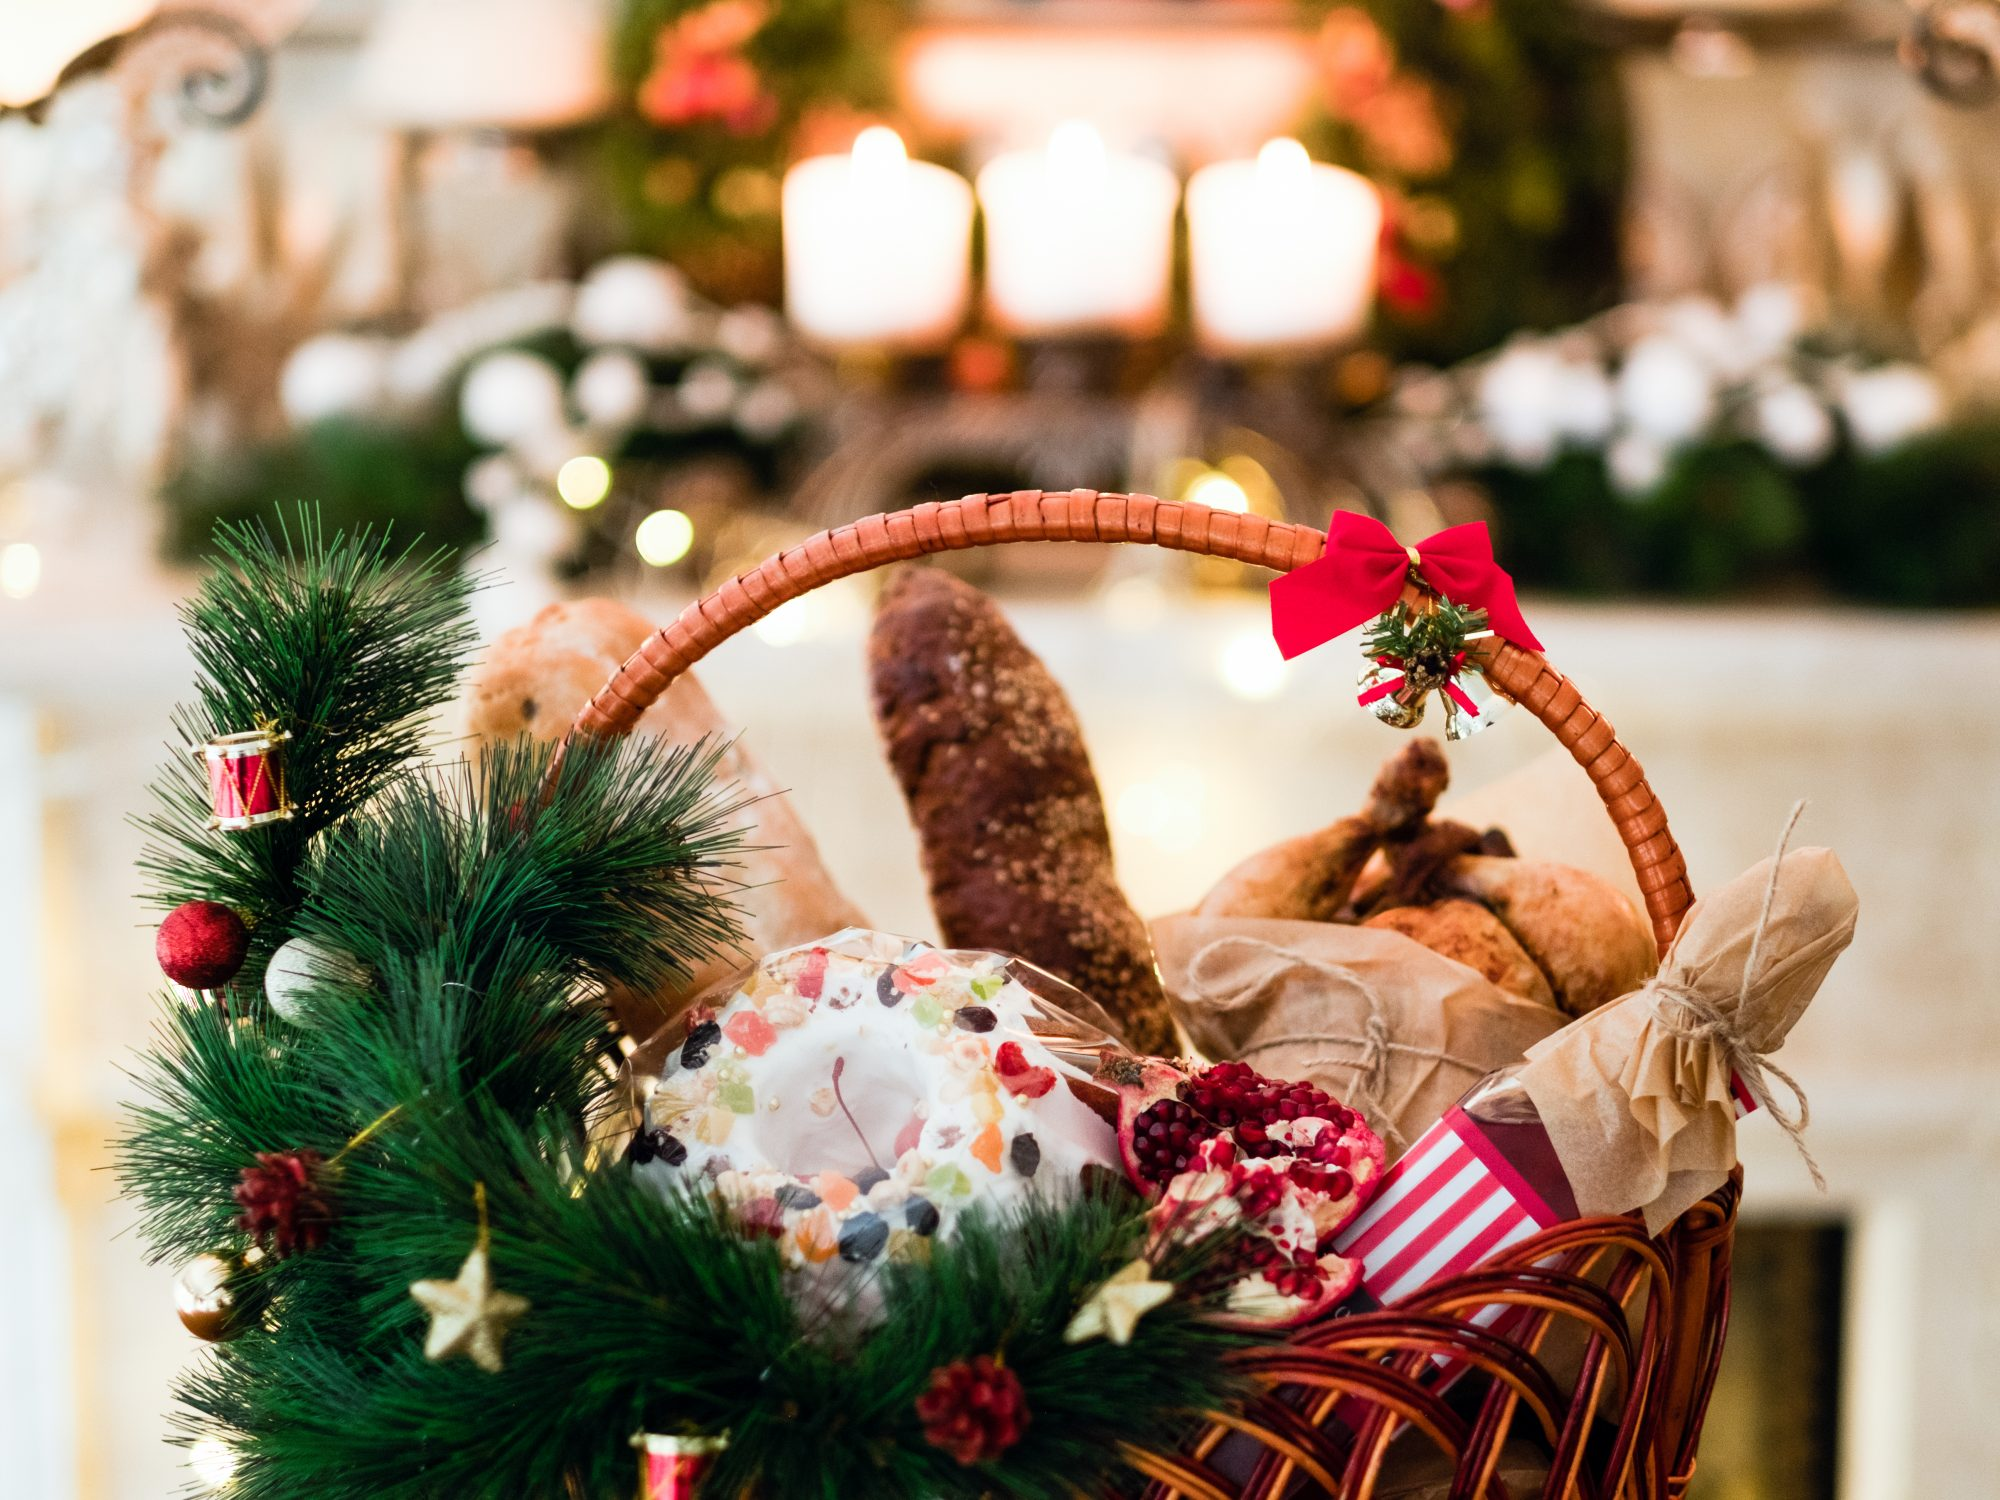 Christmas Gift Baskets 2019.Pinterest Trends 2019 Holiday Gift Baskets Southern Living